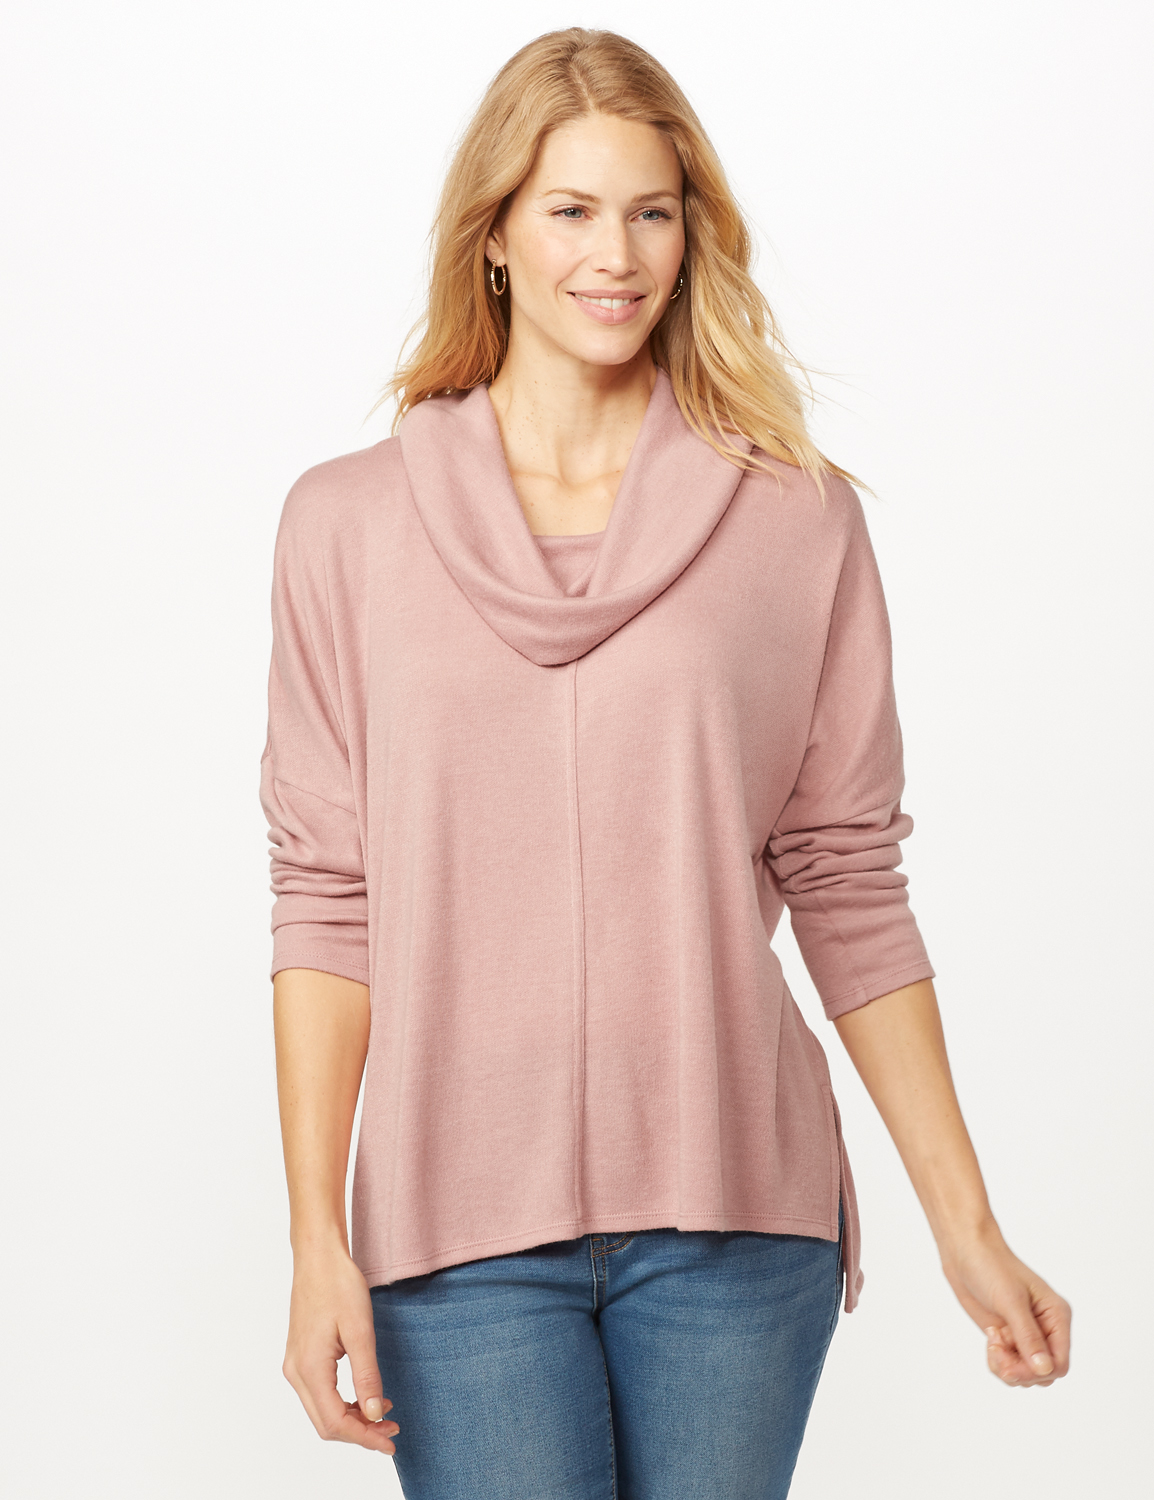 Cowl Neck Hi-Low Knit Top - Dusty Rose - Front